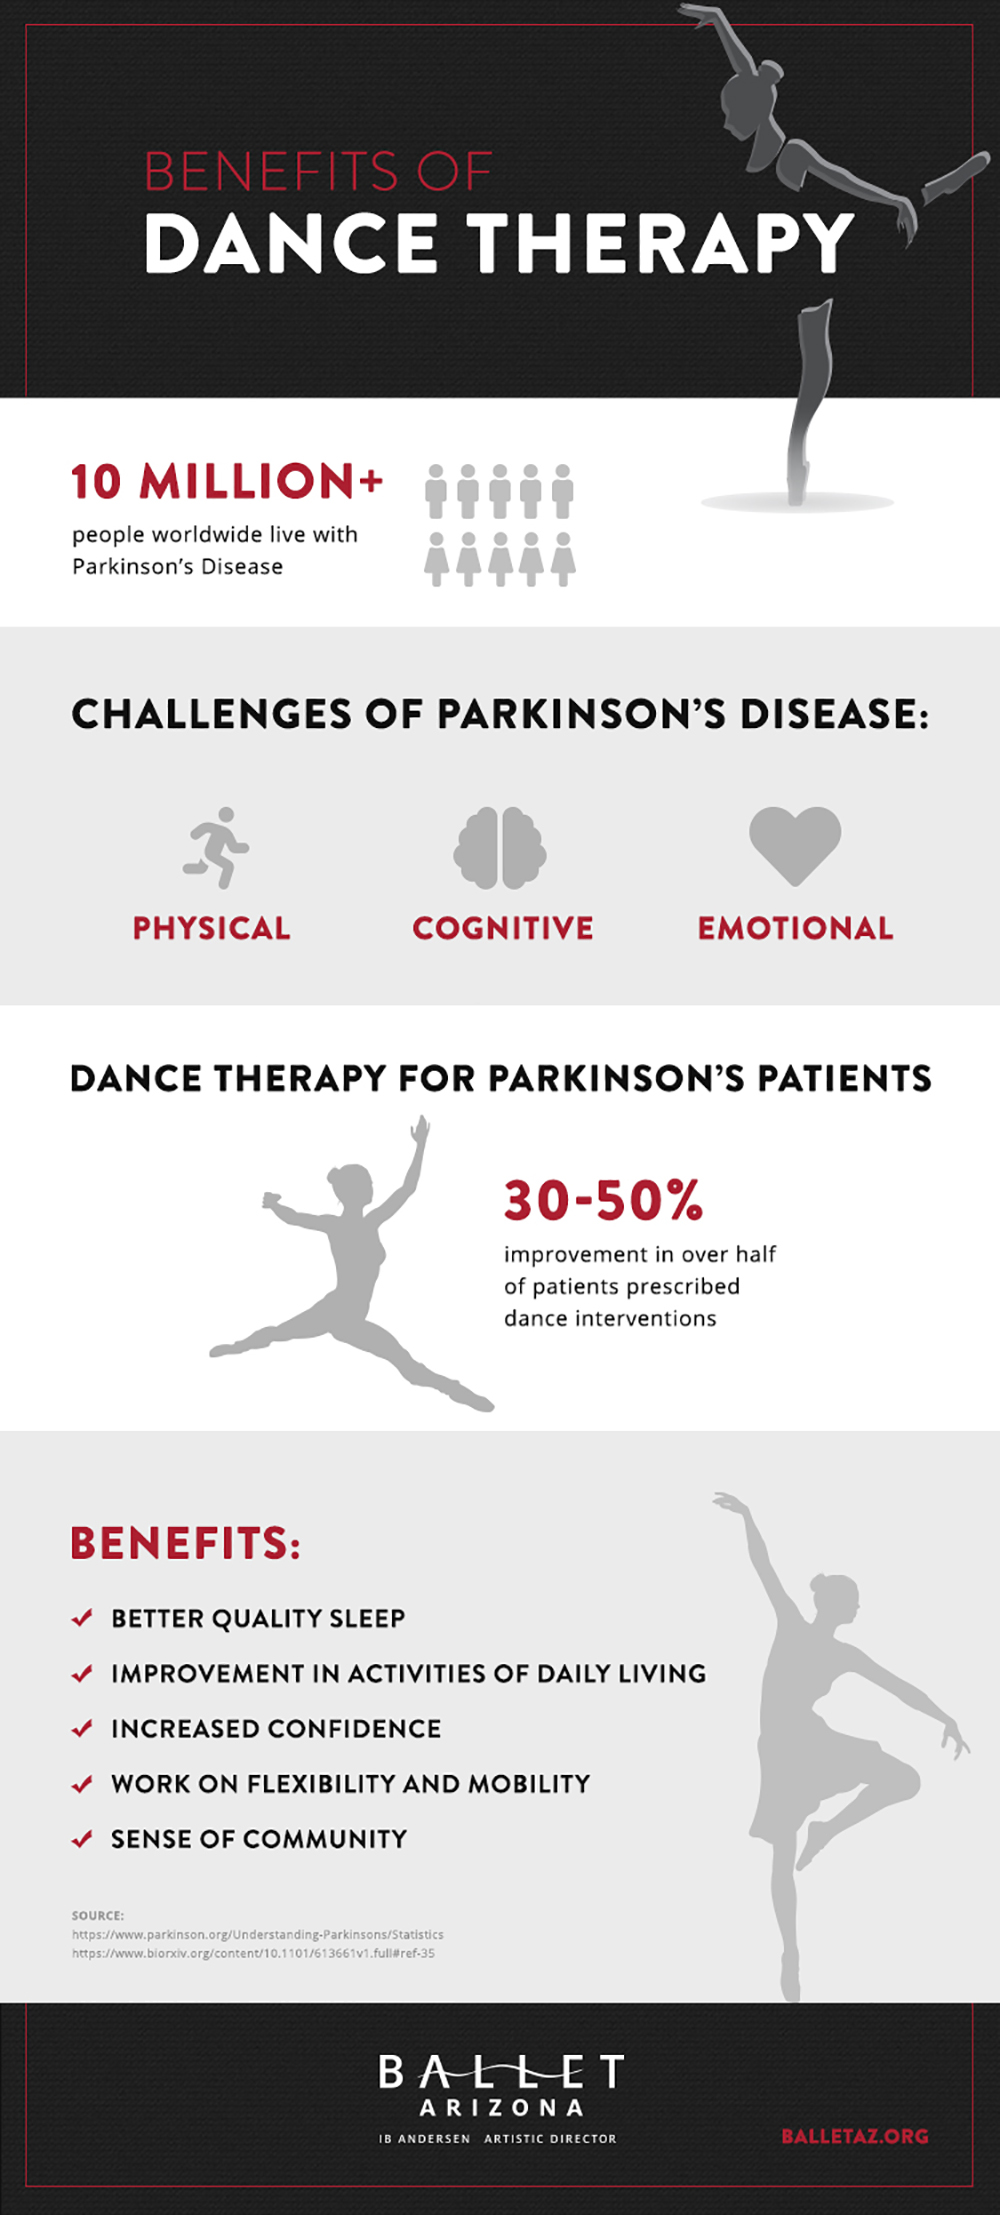 Benefits of Dance Therapy